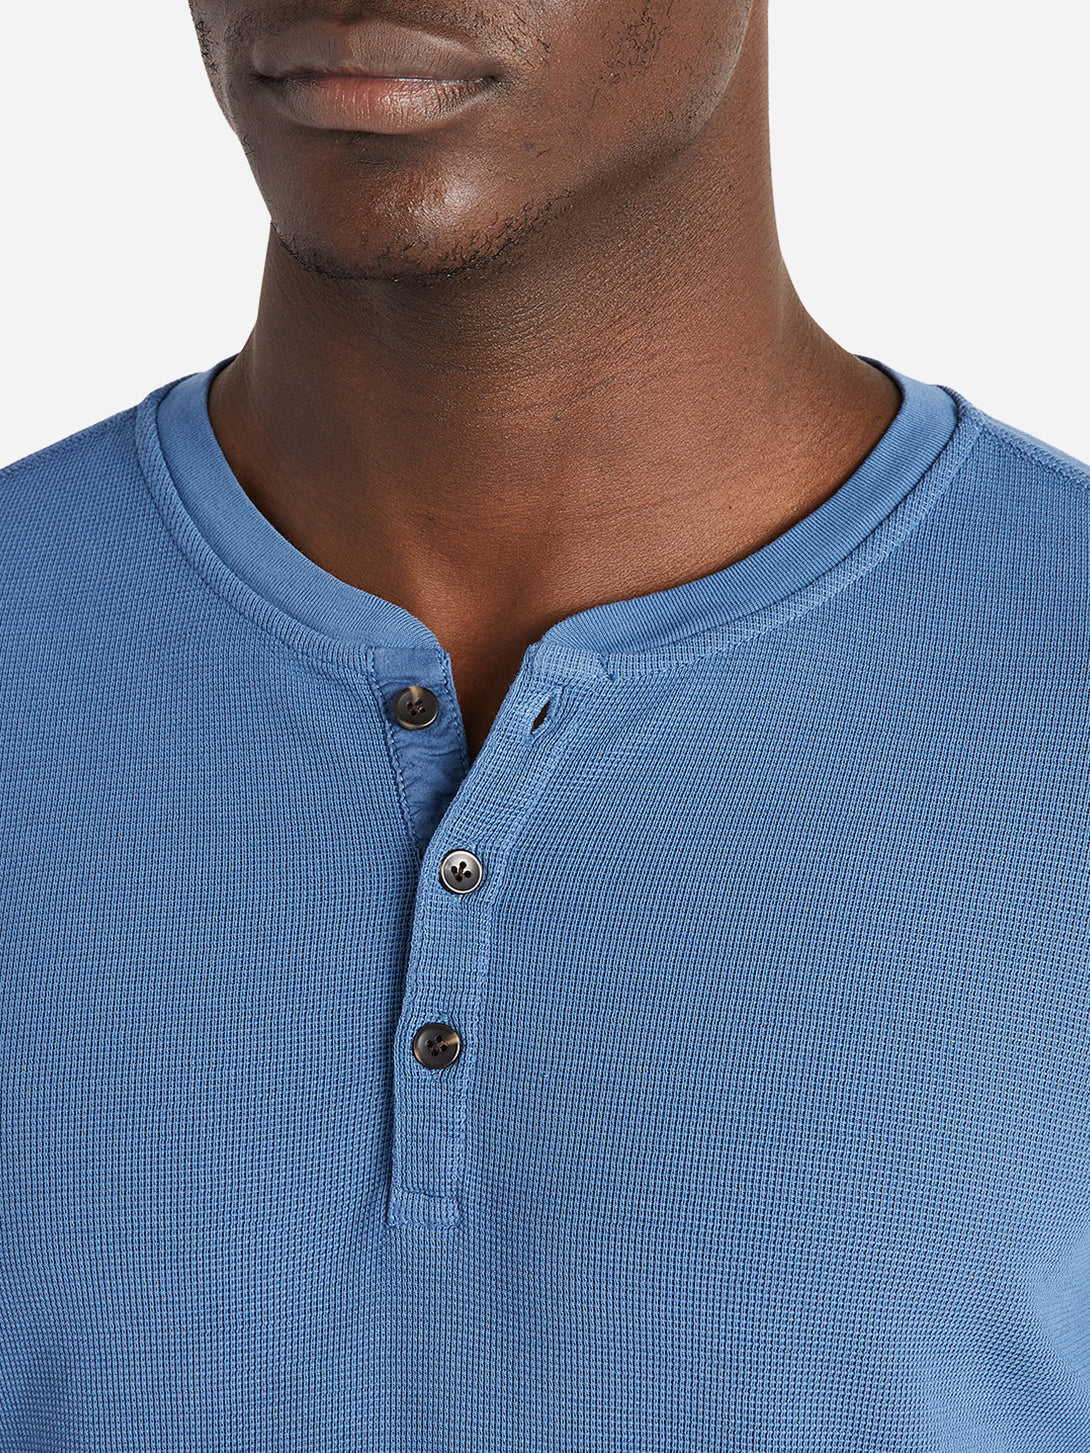 black friday deals ONS Clothing Men's COURT WAFFLE HENLEY Pre-shrunk Cotton in COBALT BLUE Pima Cotton